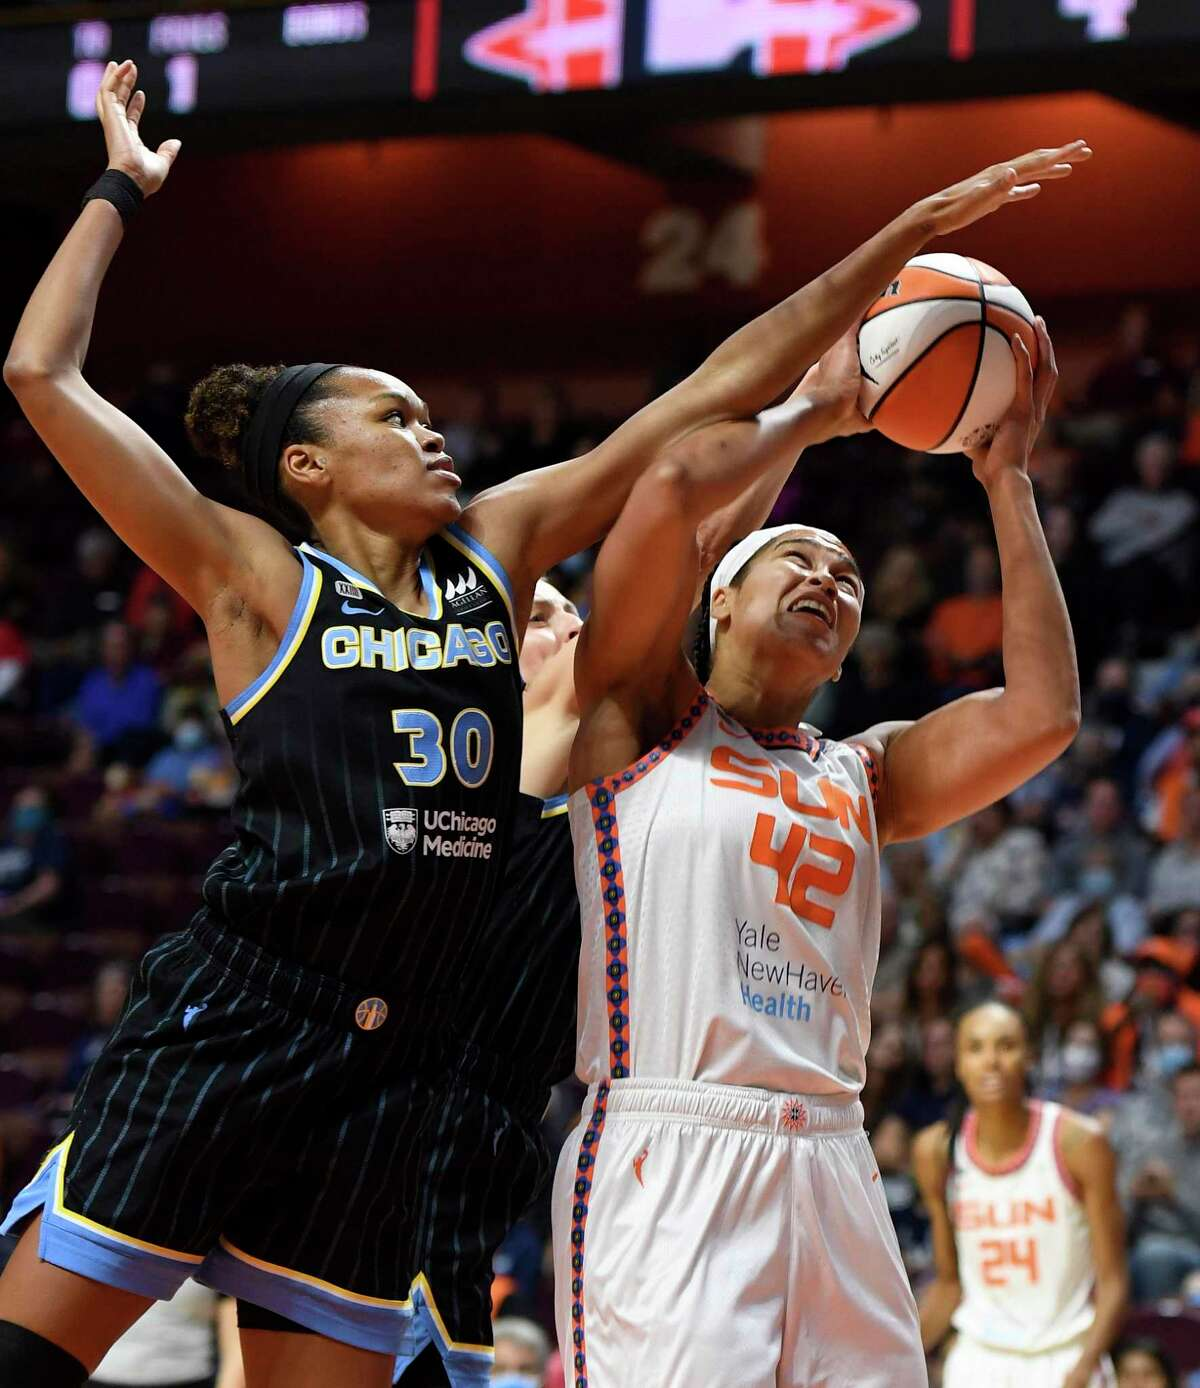 Connecticut Sun center Brionna Jones is fouled by Chicago Sky center Azura Stevens during a WNBA playoff basketball game Tuesday, Sept. 28, 2021 at Mohegan Sun Arena in Uncasville, Conn. (Sean D. Elliot/The Day via AP)